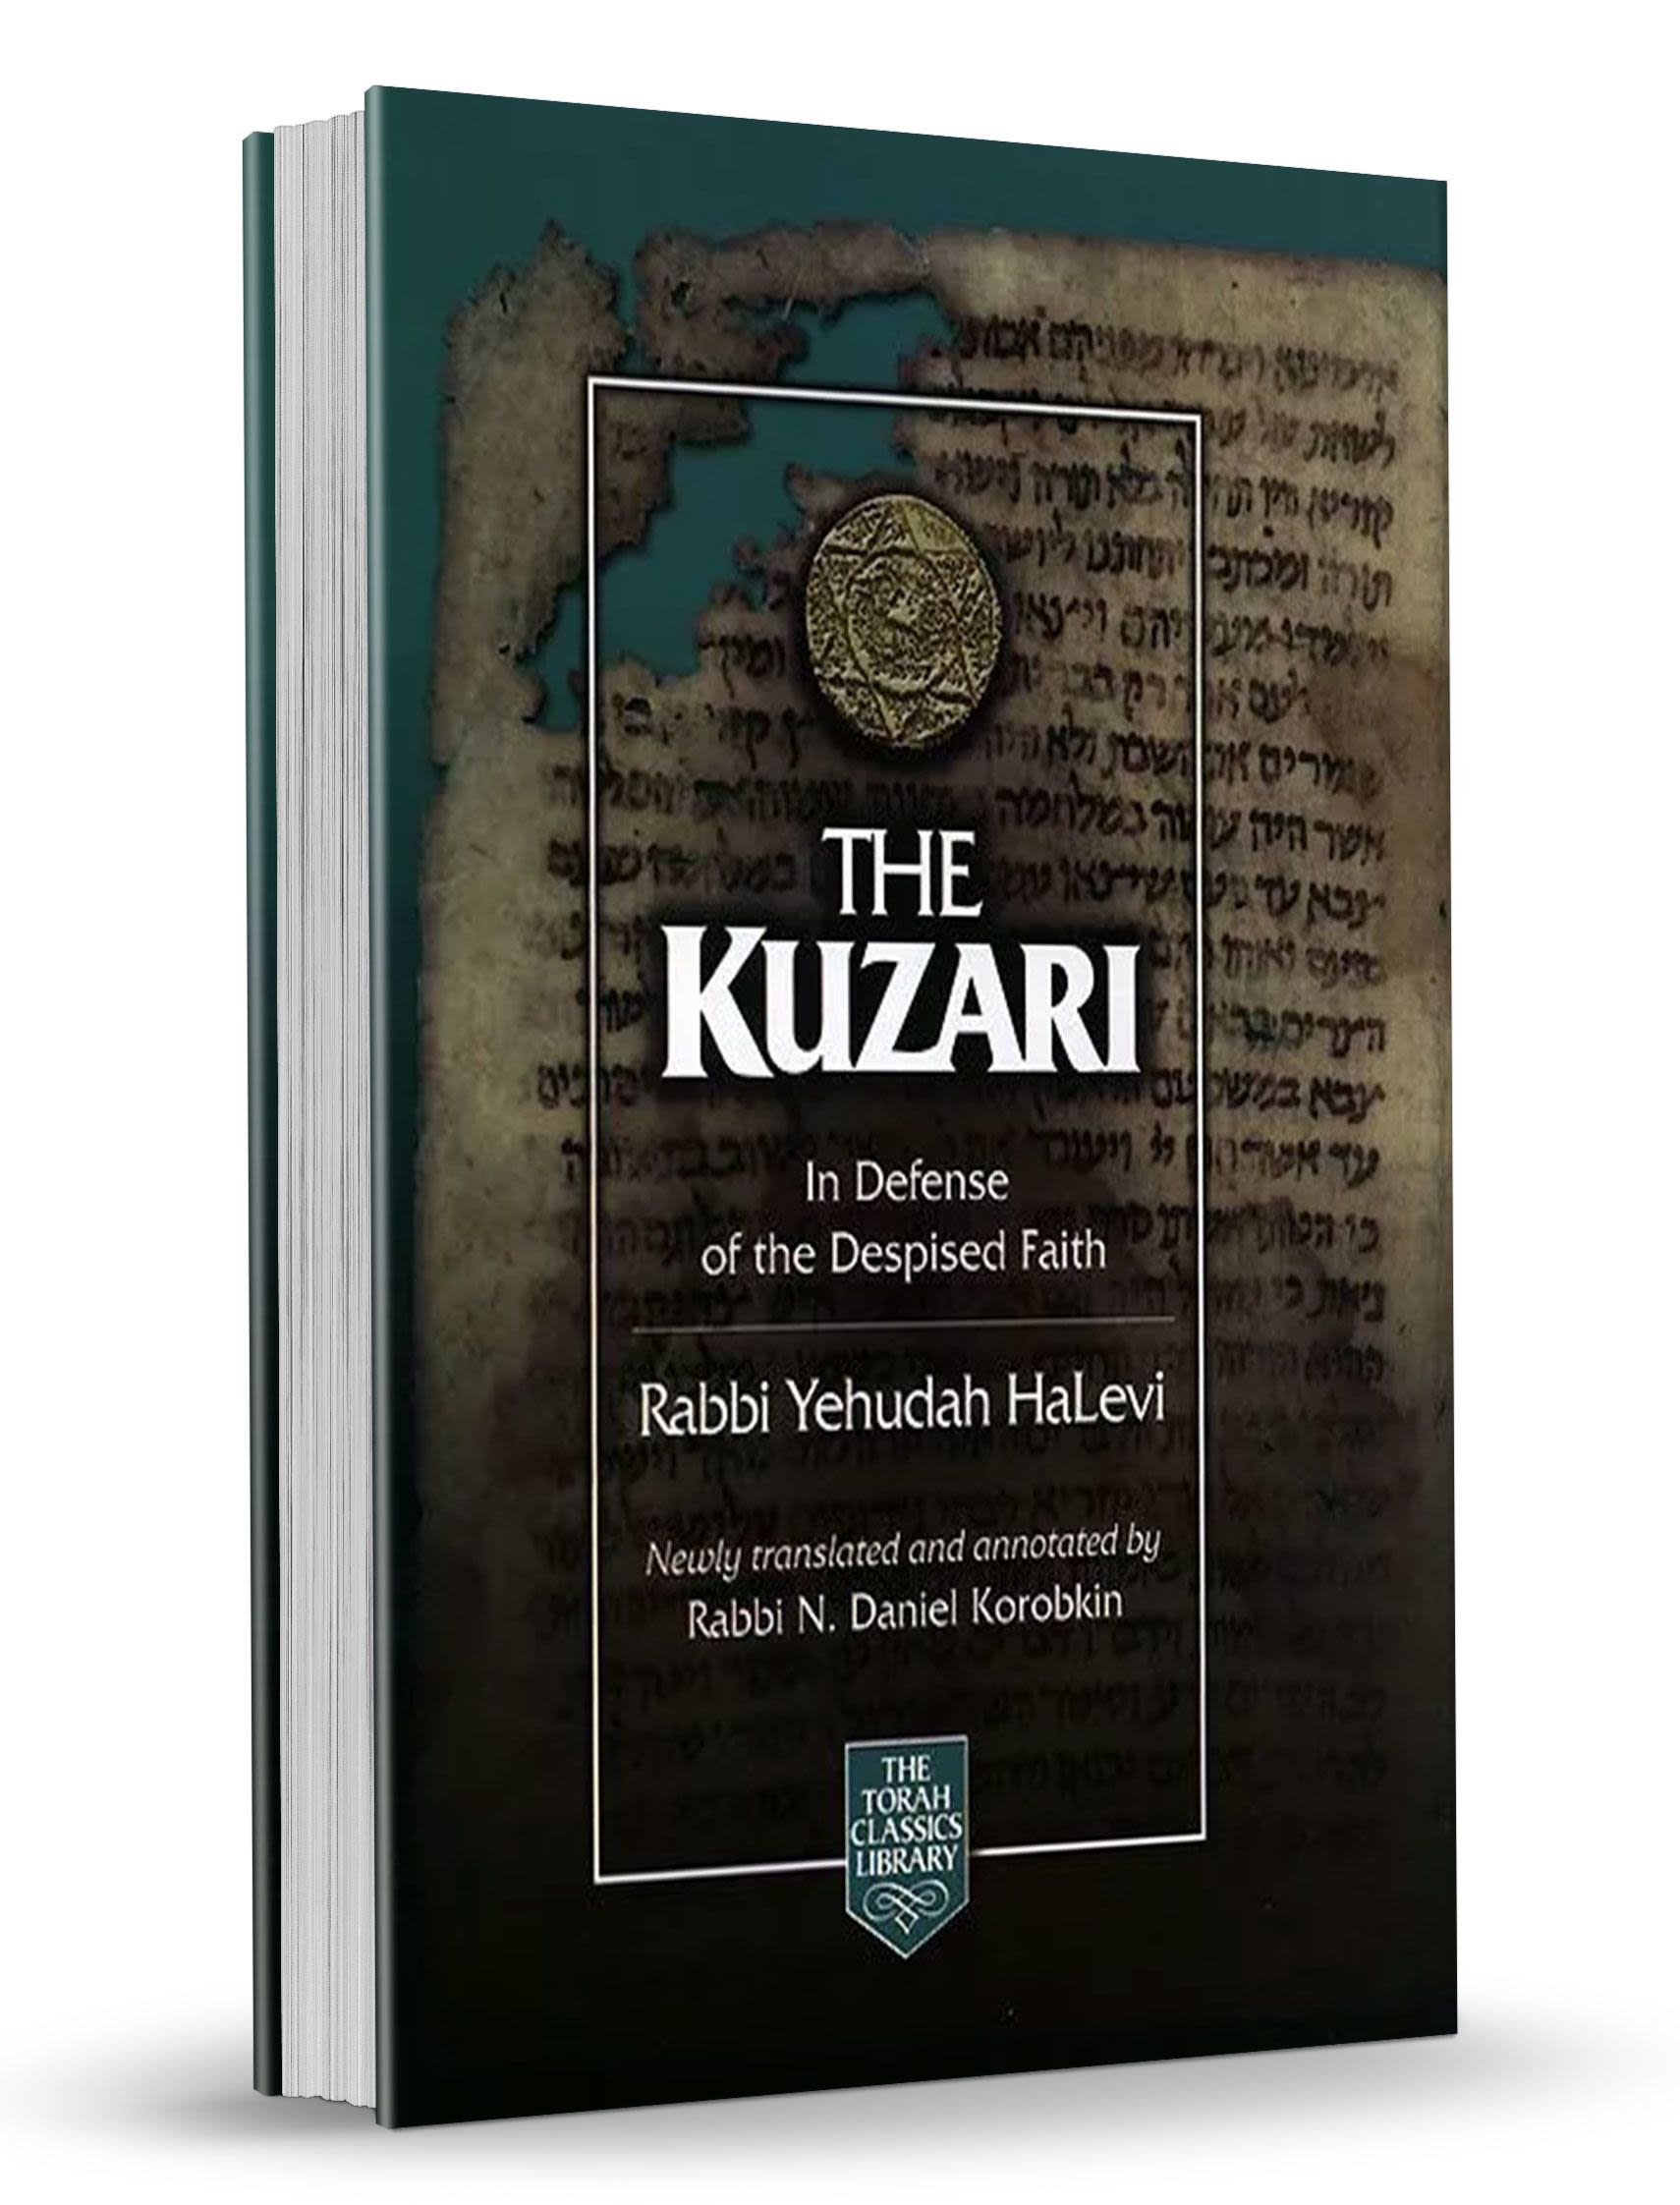 The Kuzari; Large edition